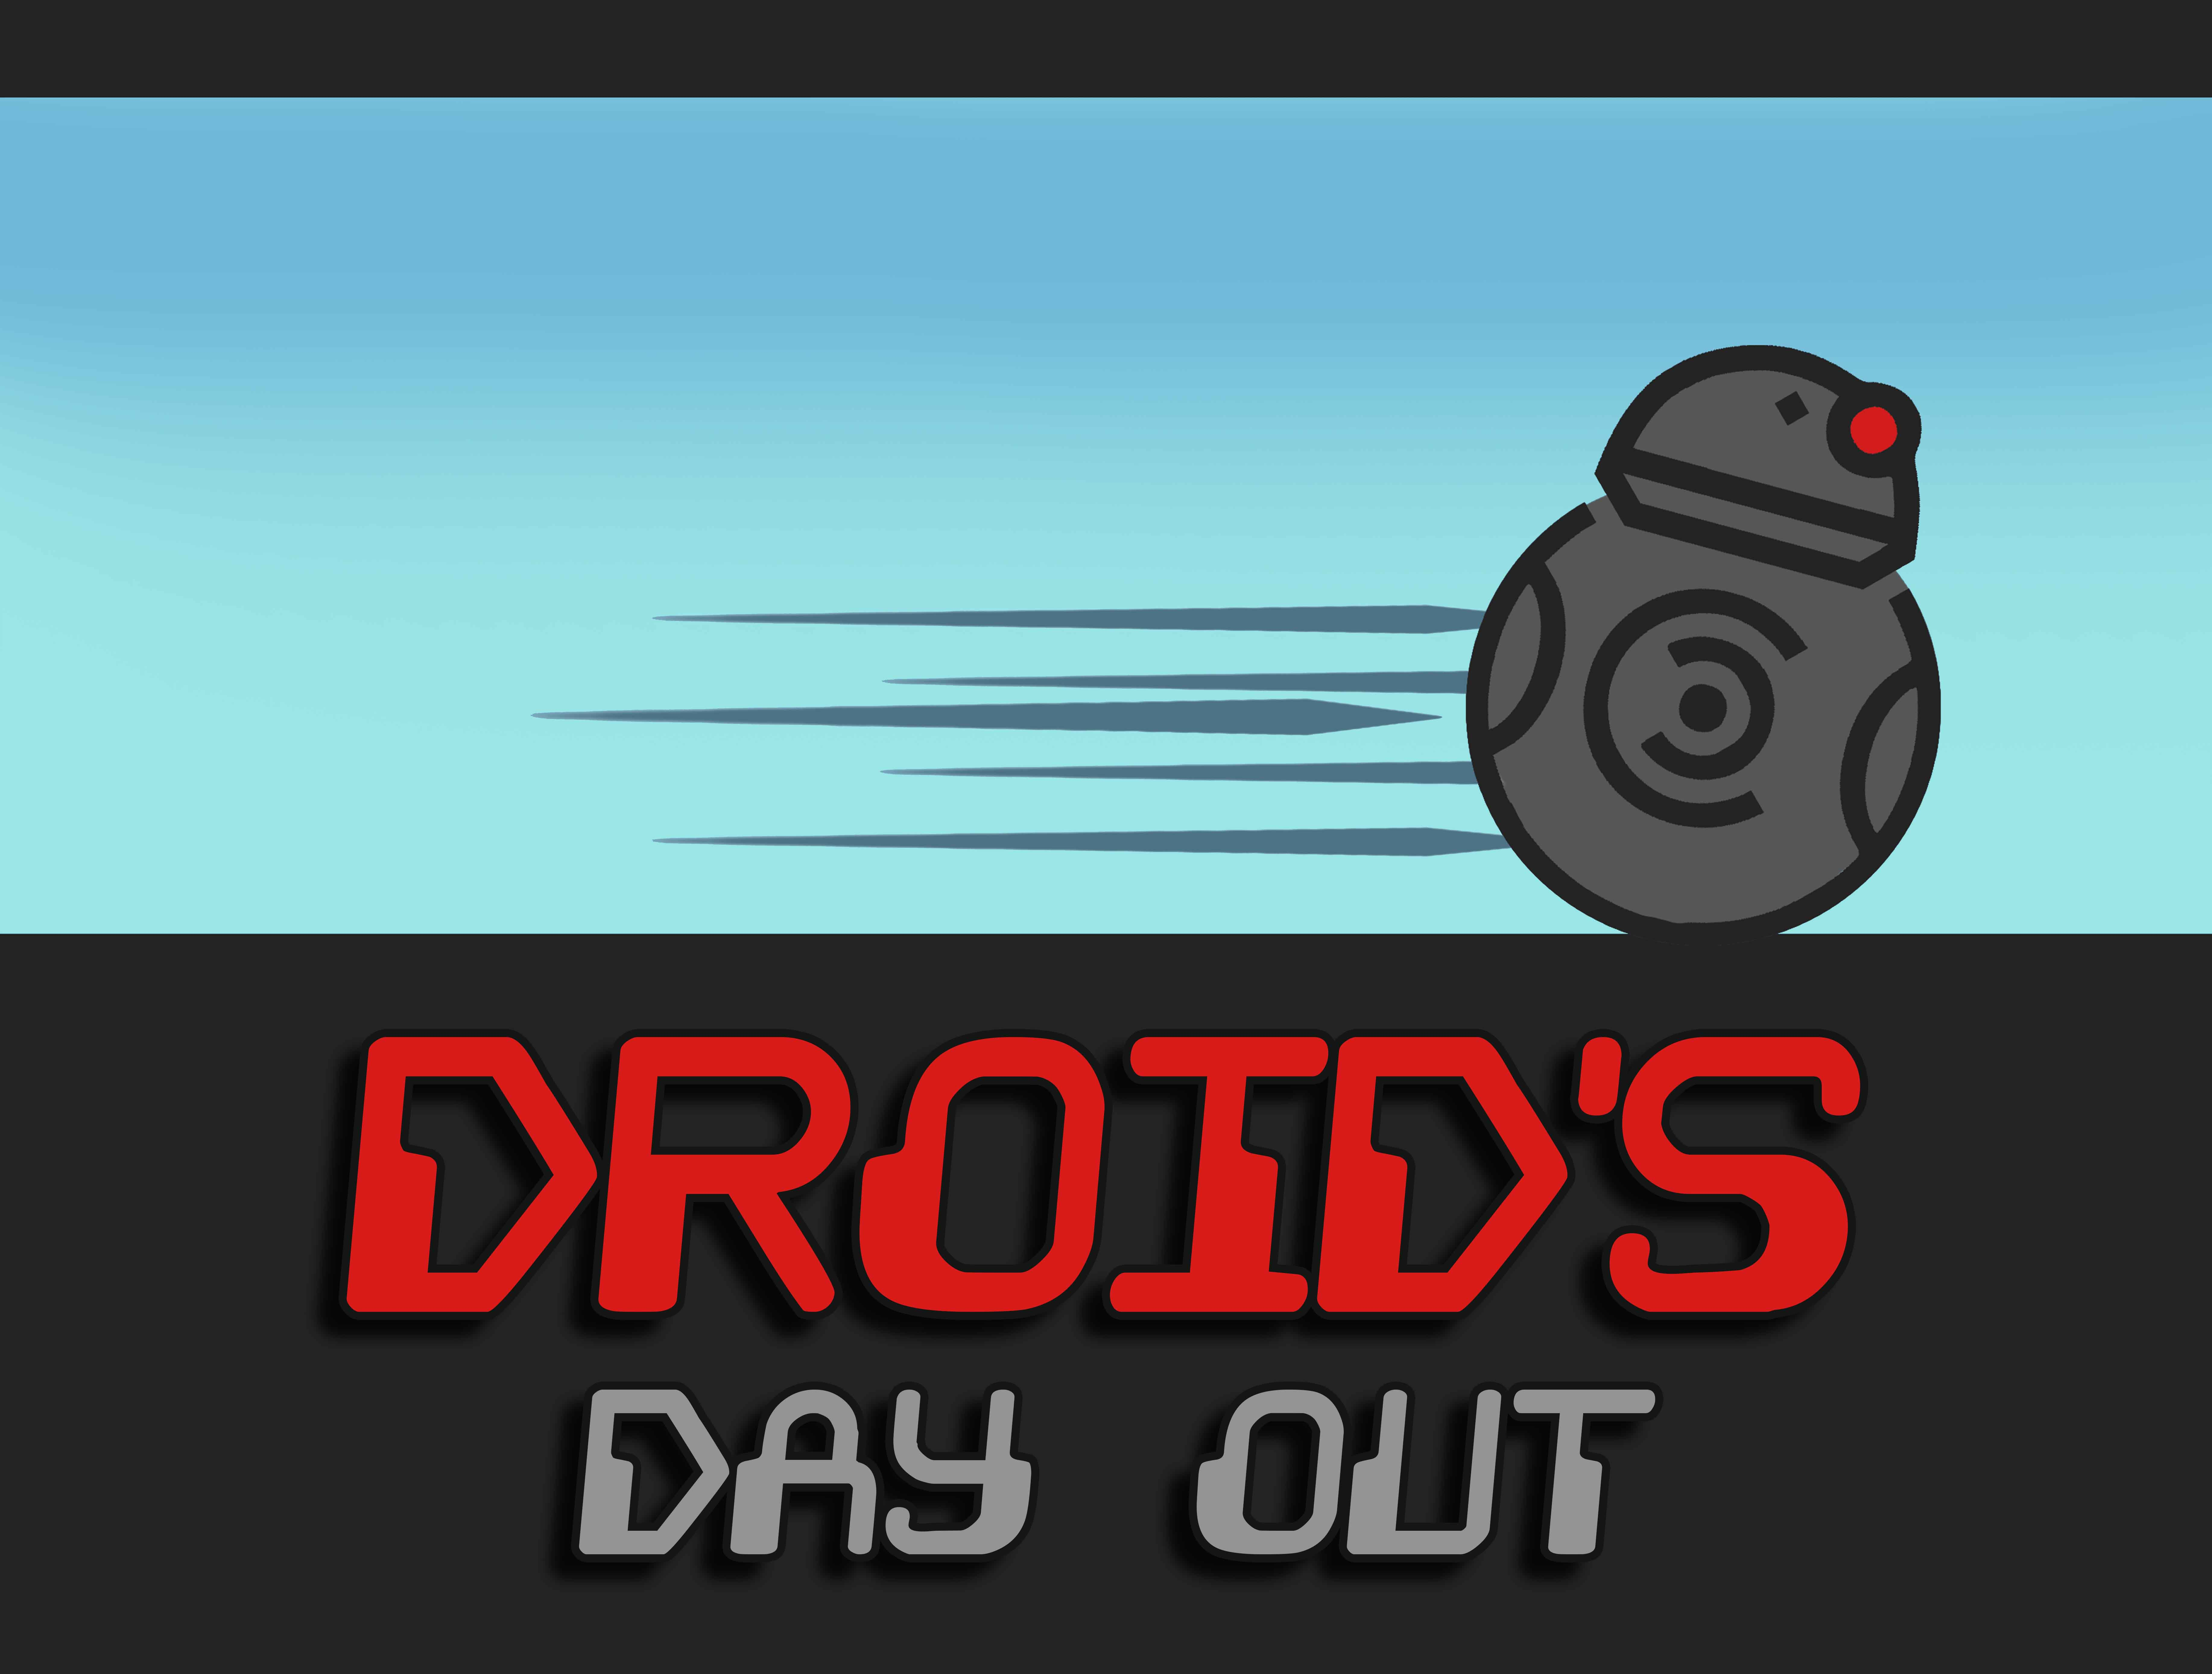 Droid's Day Out